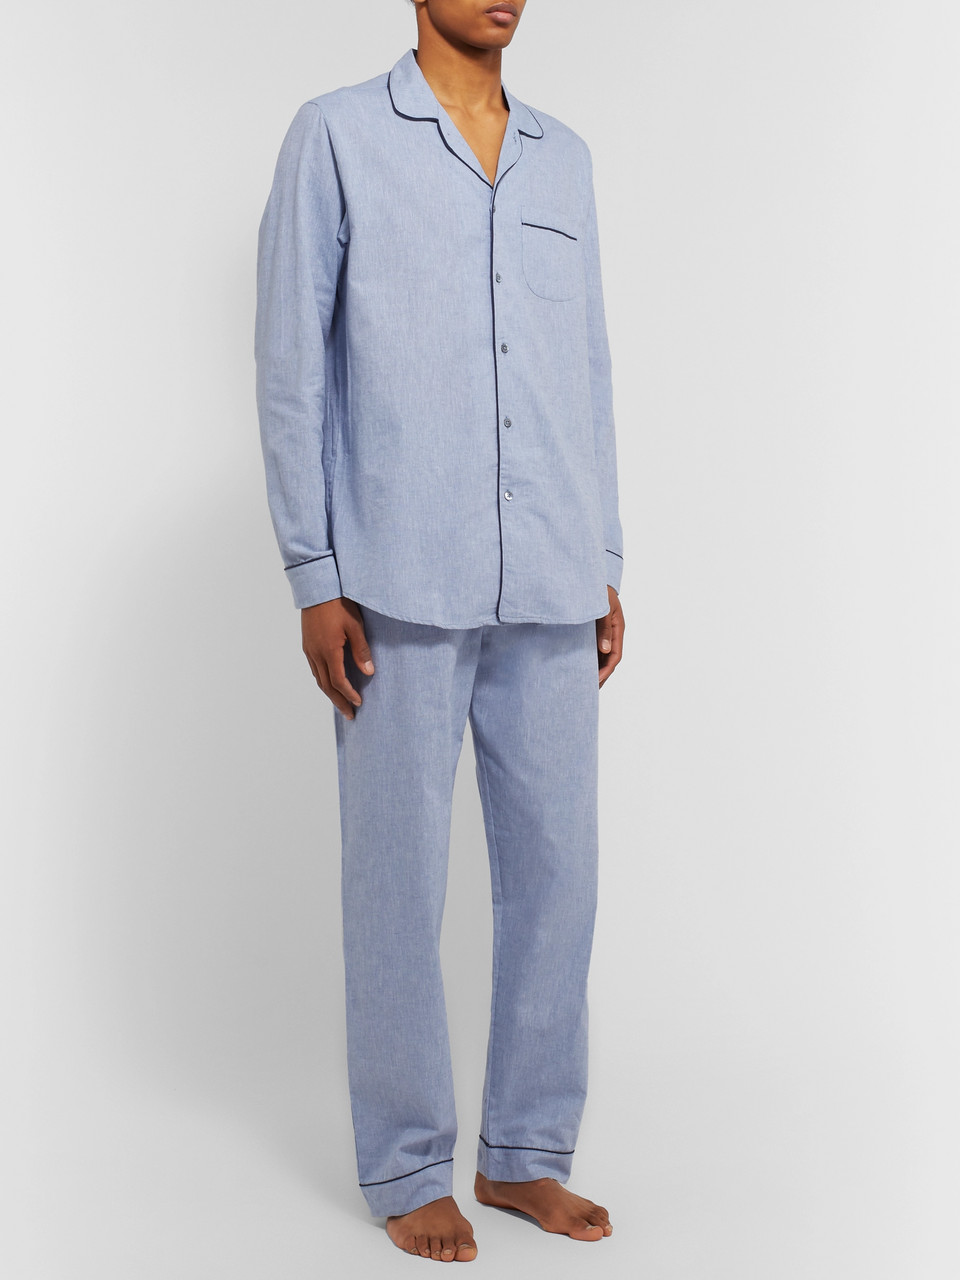 Desmond & Dempsey Piped Cotton and Linen-Blend Pyjama Shirt